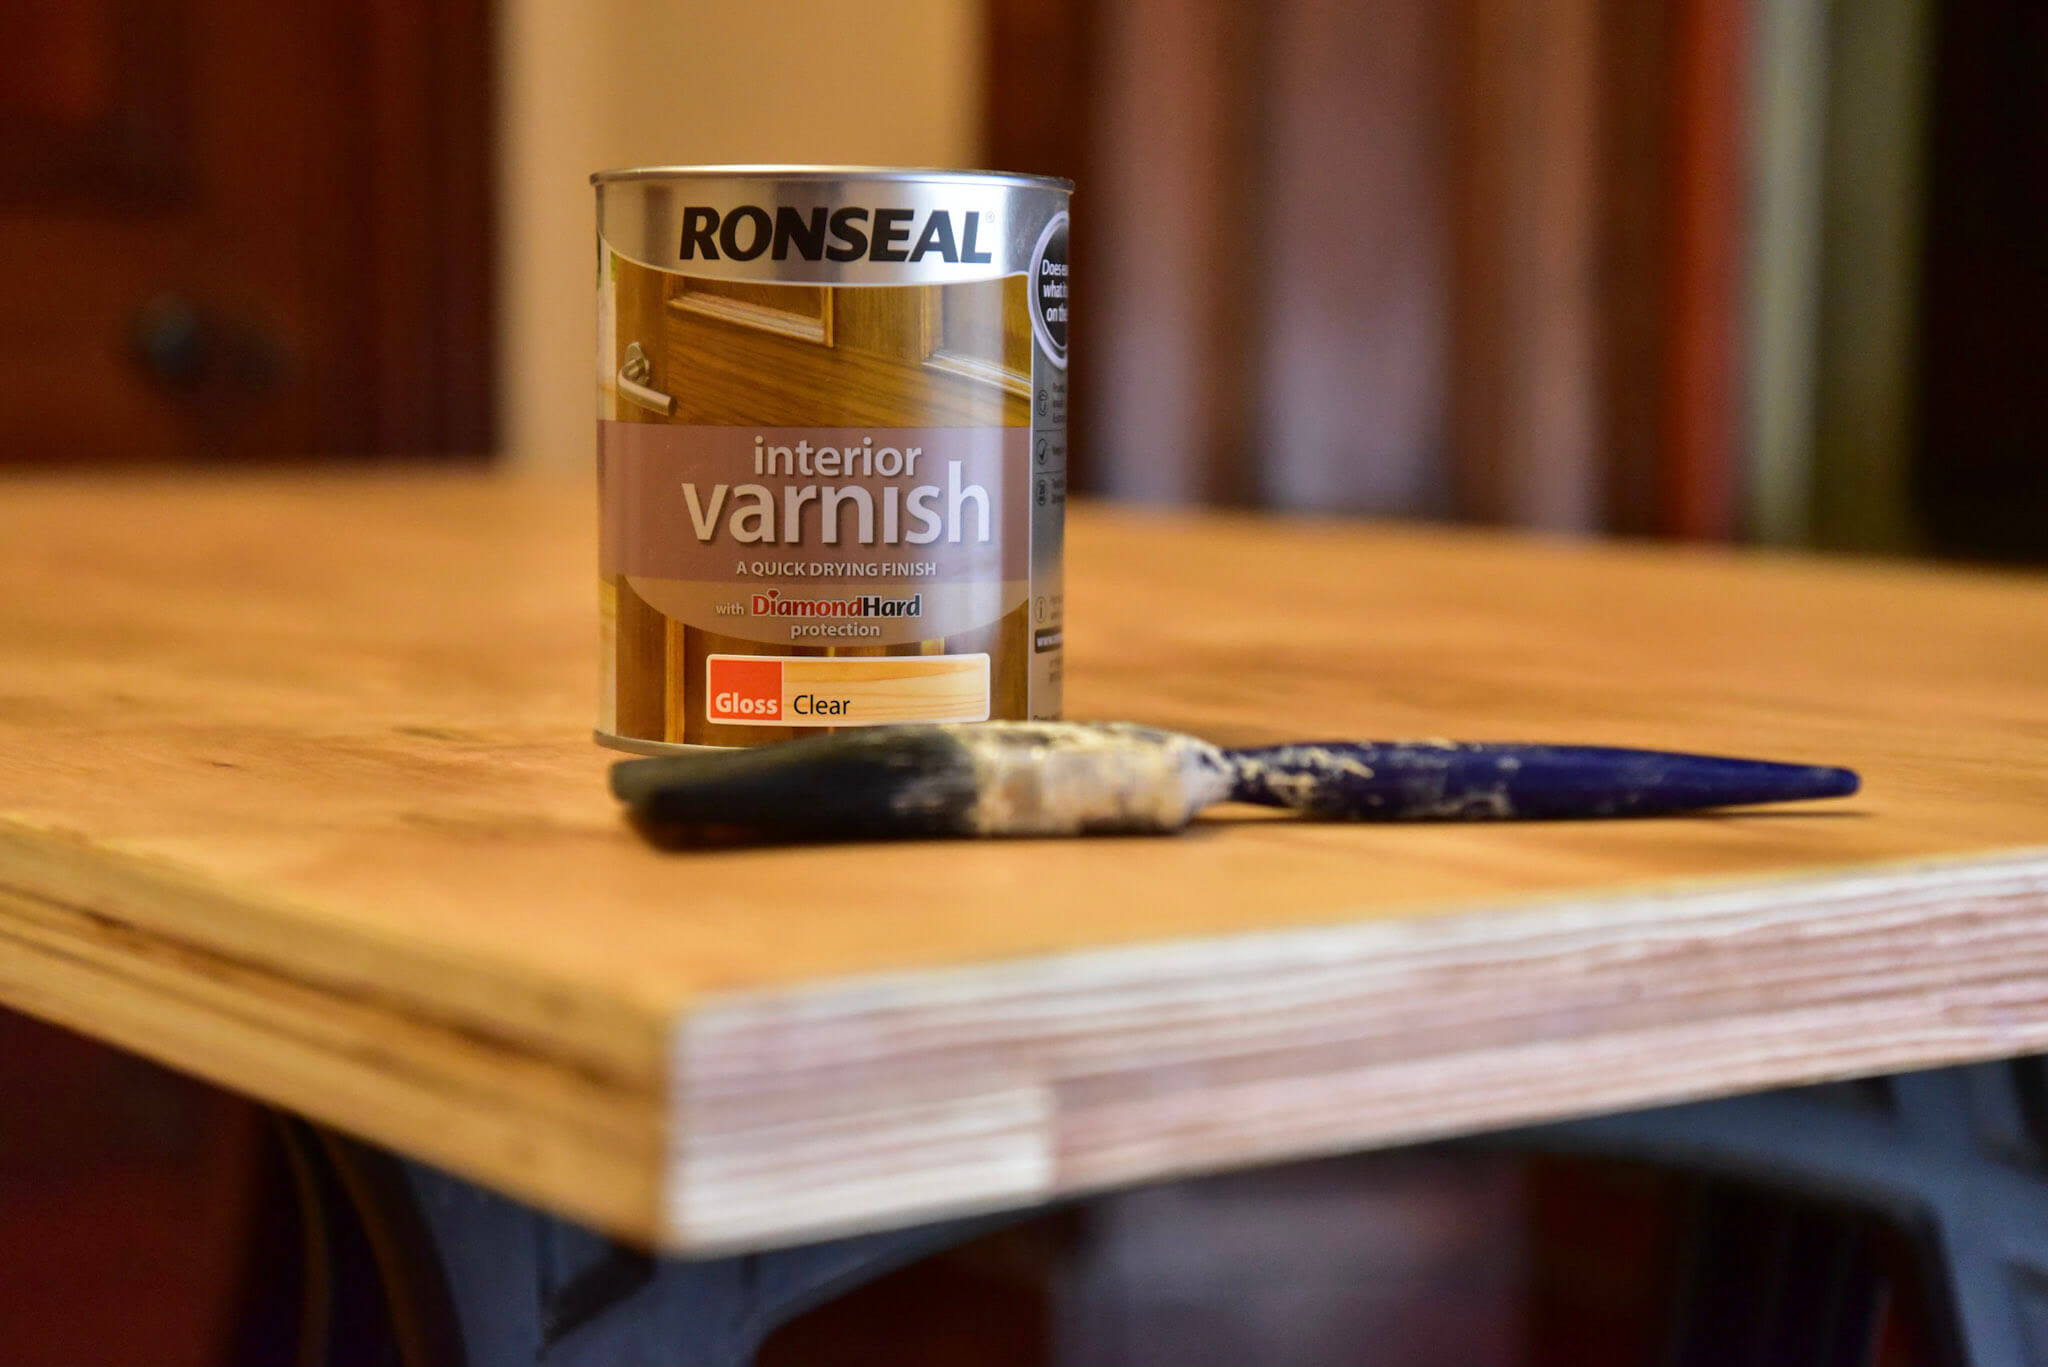 Several coats of varnish which applied to the desk top. Wire wool was used to burnish varnish between each coat.